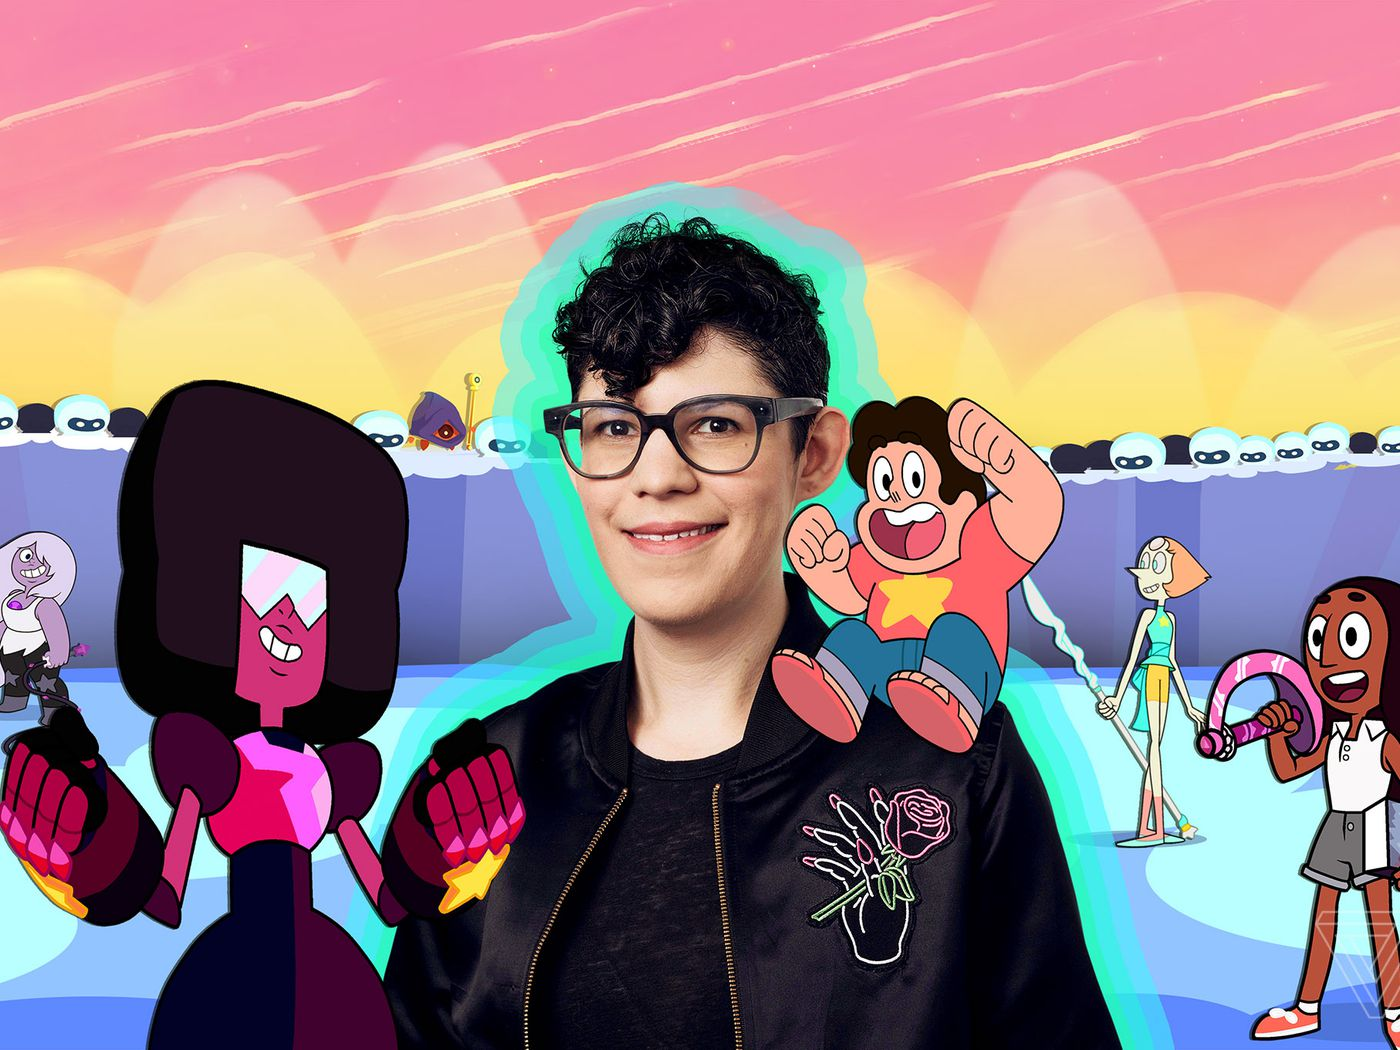 Steven Universe Creator Rebecca Sugar On Animation And The Power Of Empathy The Verge